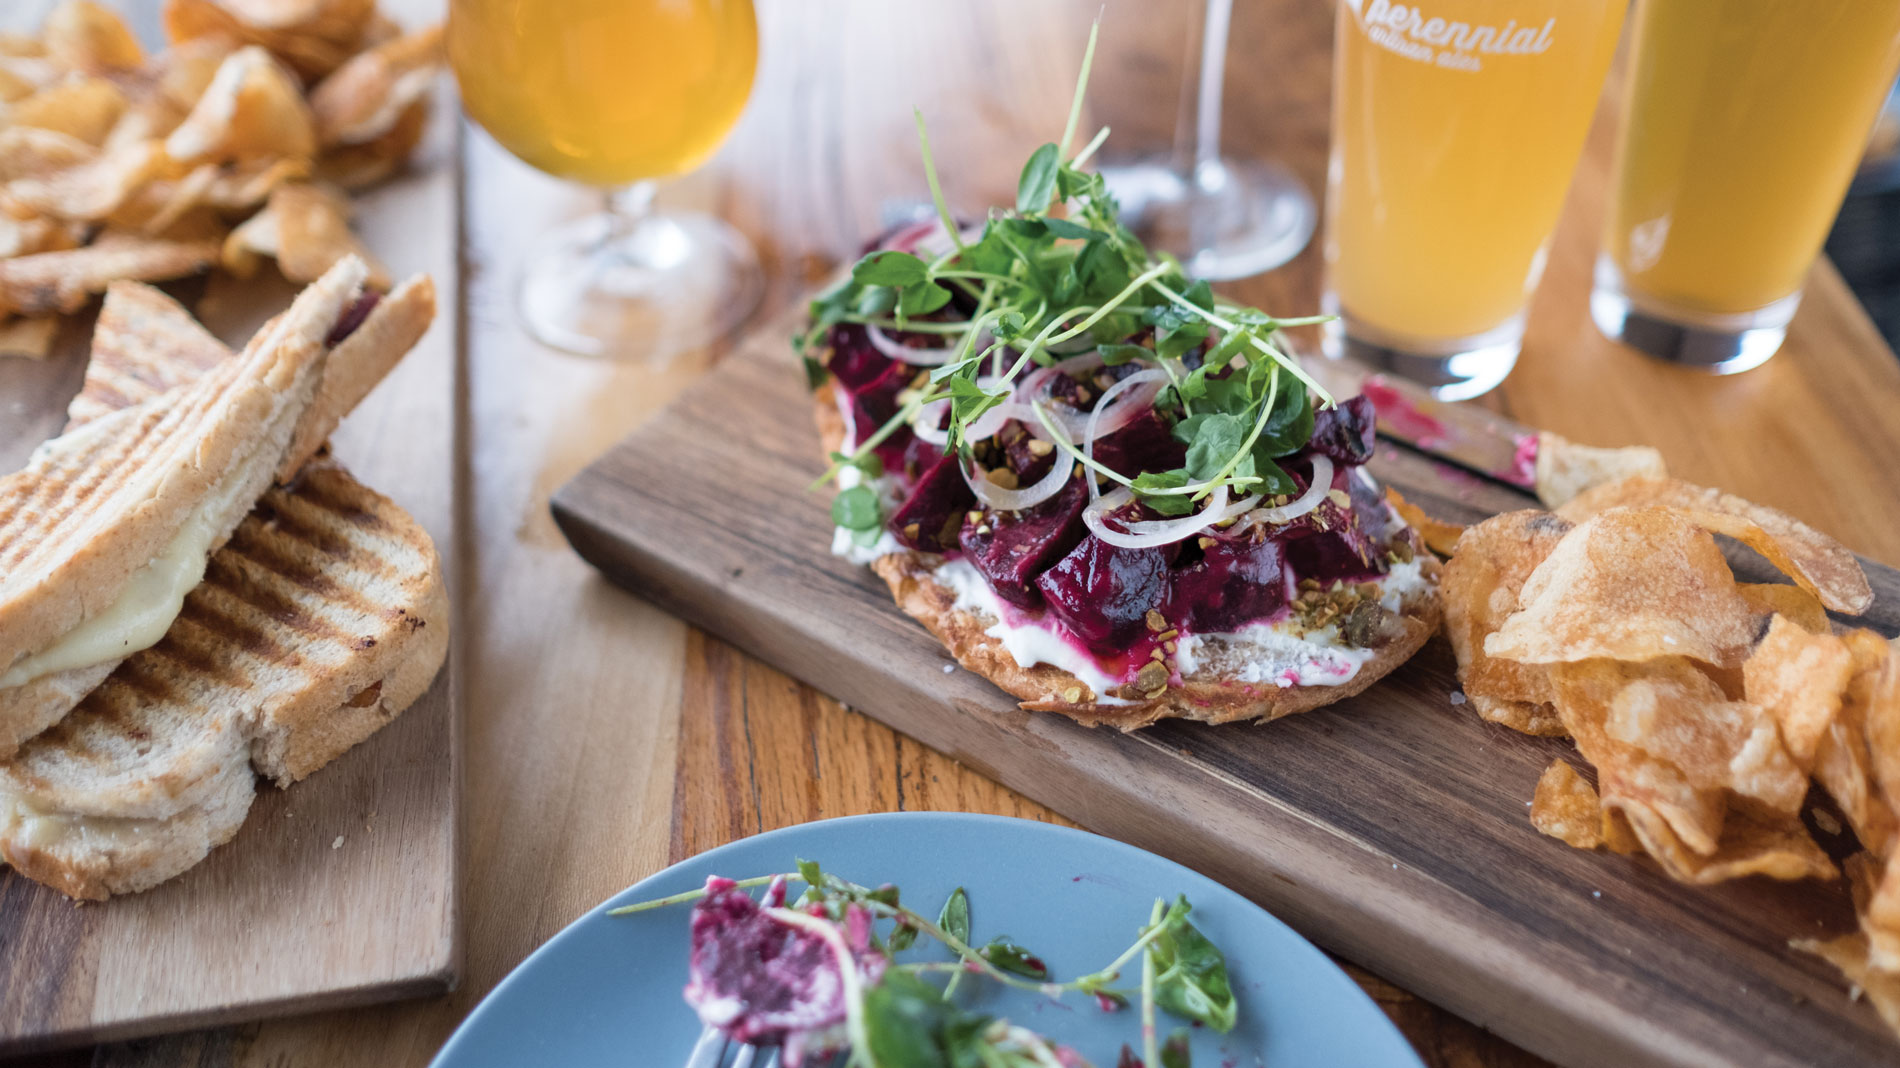 grilled cheese and tartine at perennial artisan ales